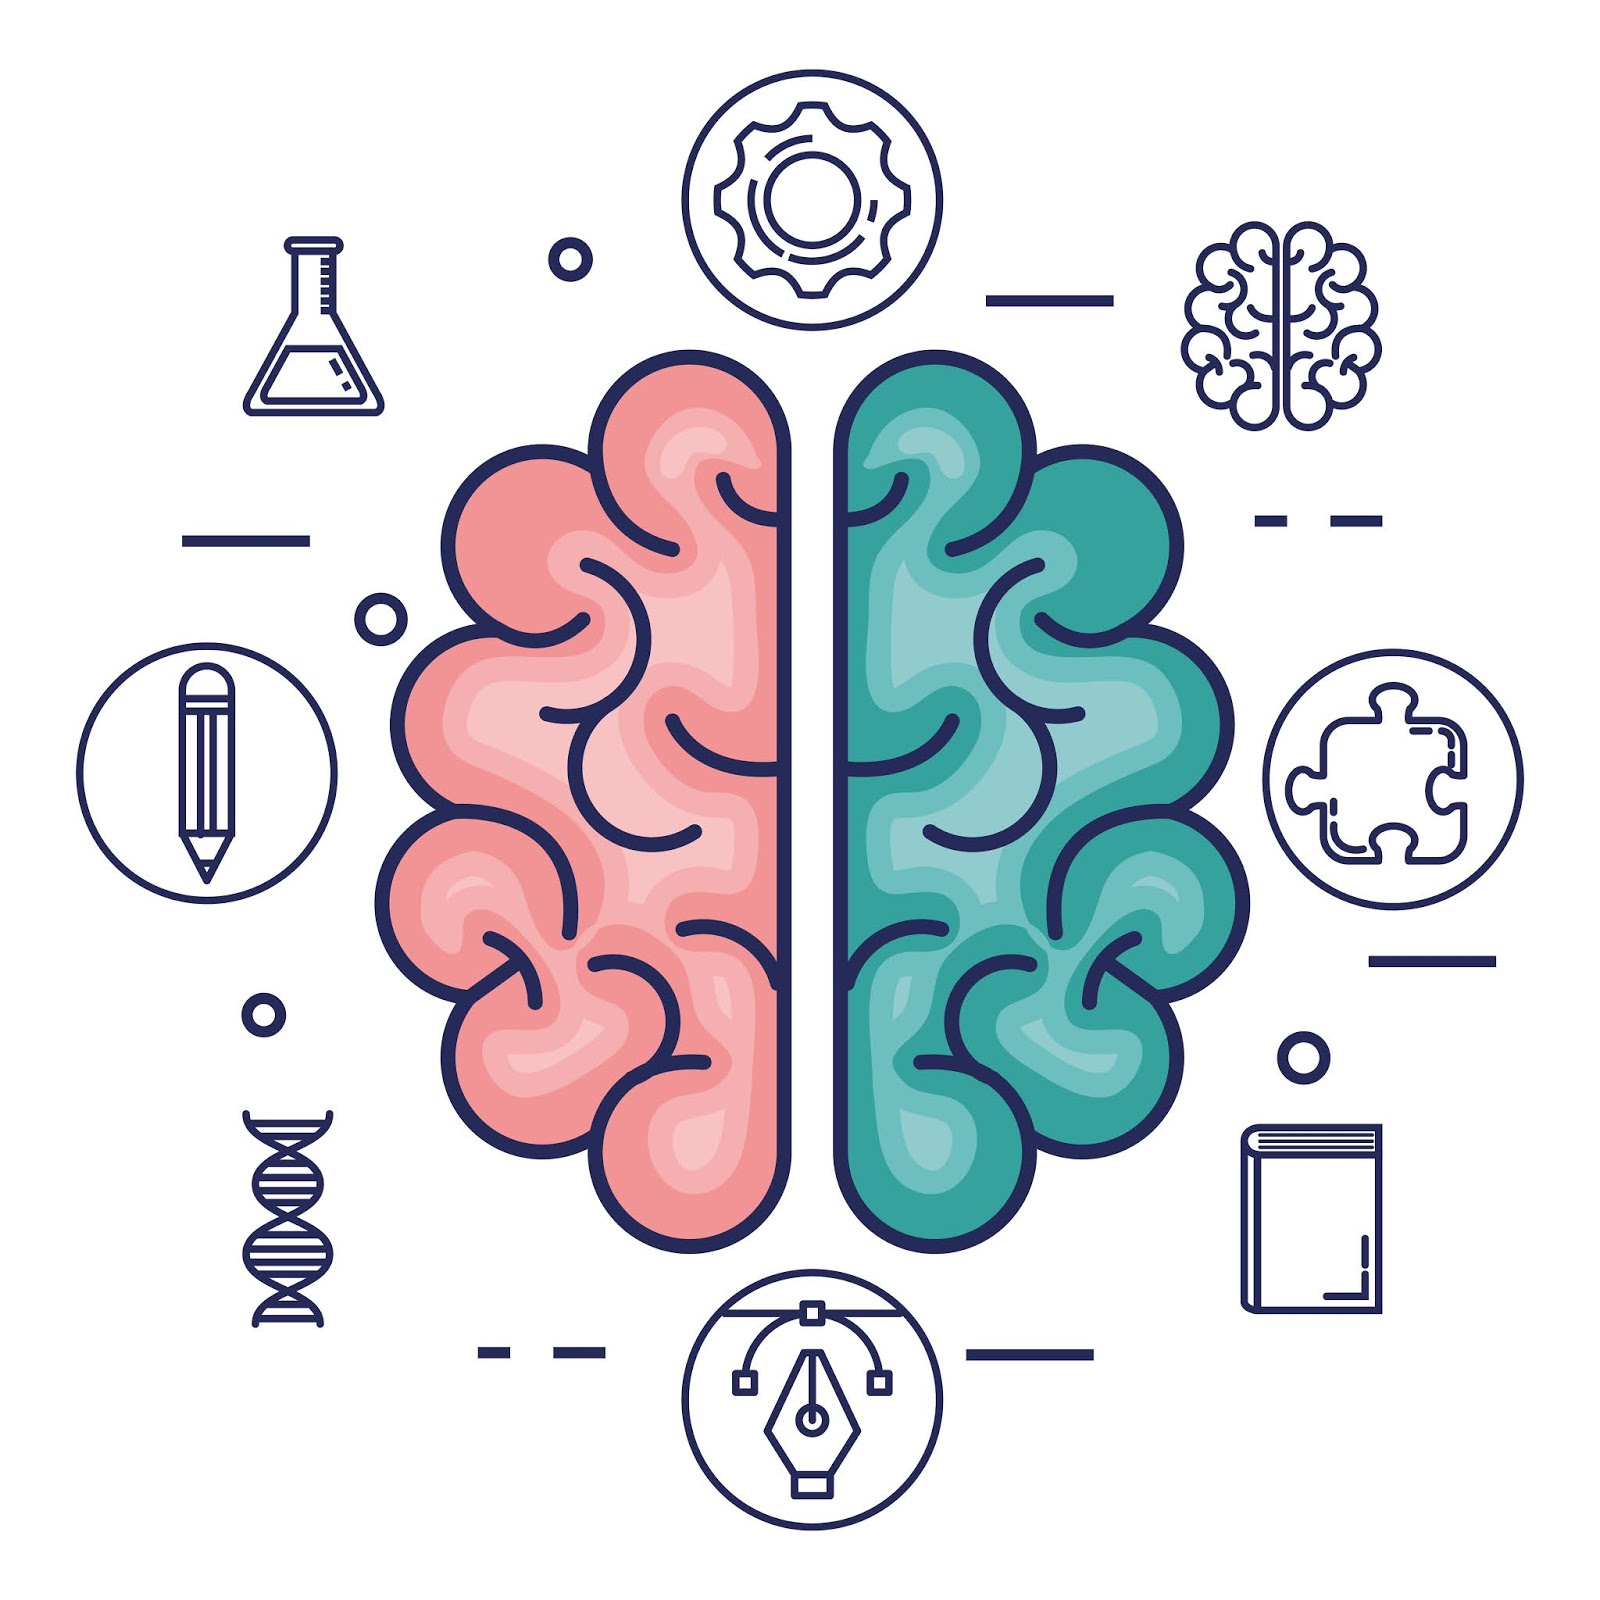 Brain Storming Set Icons Free Download Vector CDR, AI, EPS and PNG Formats